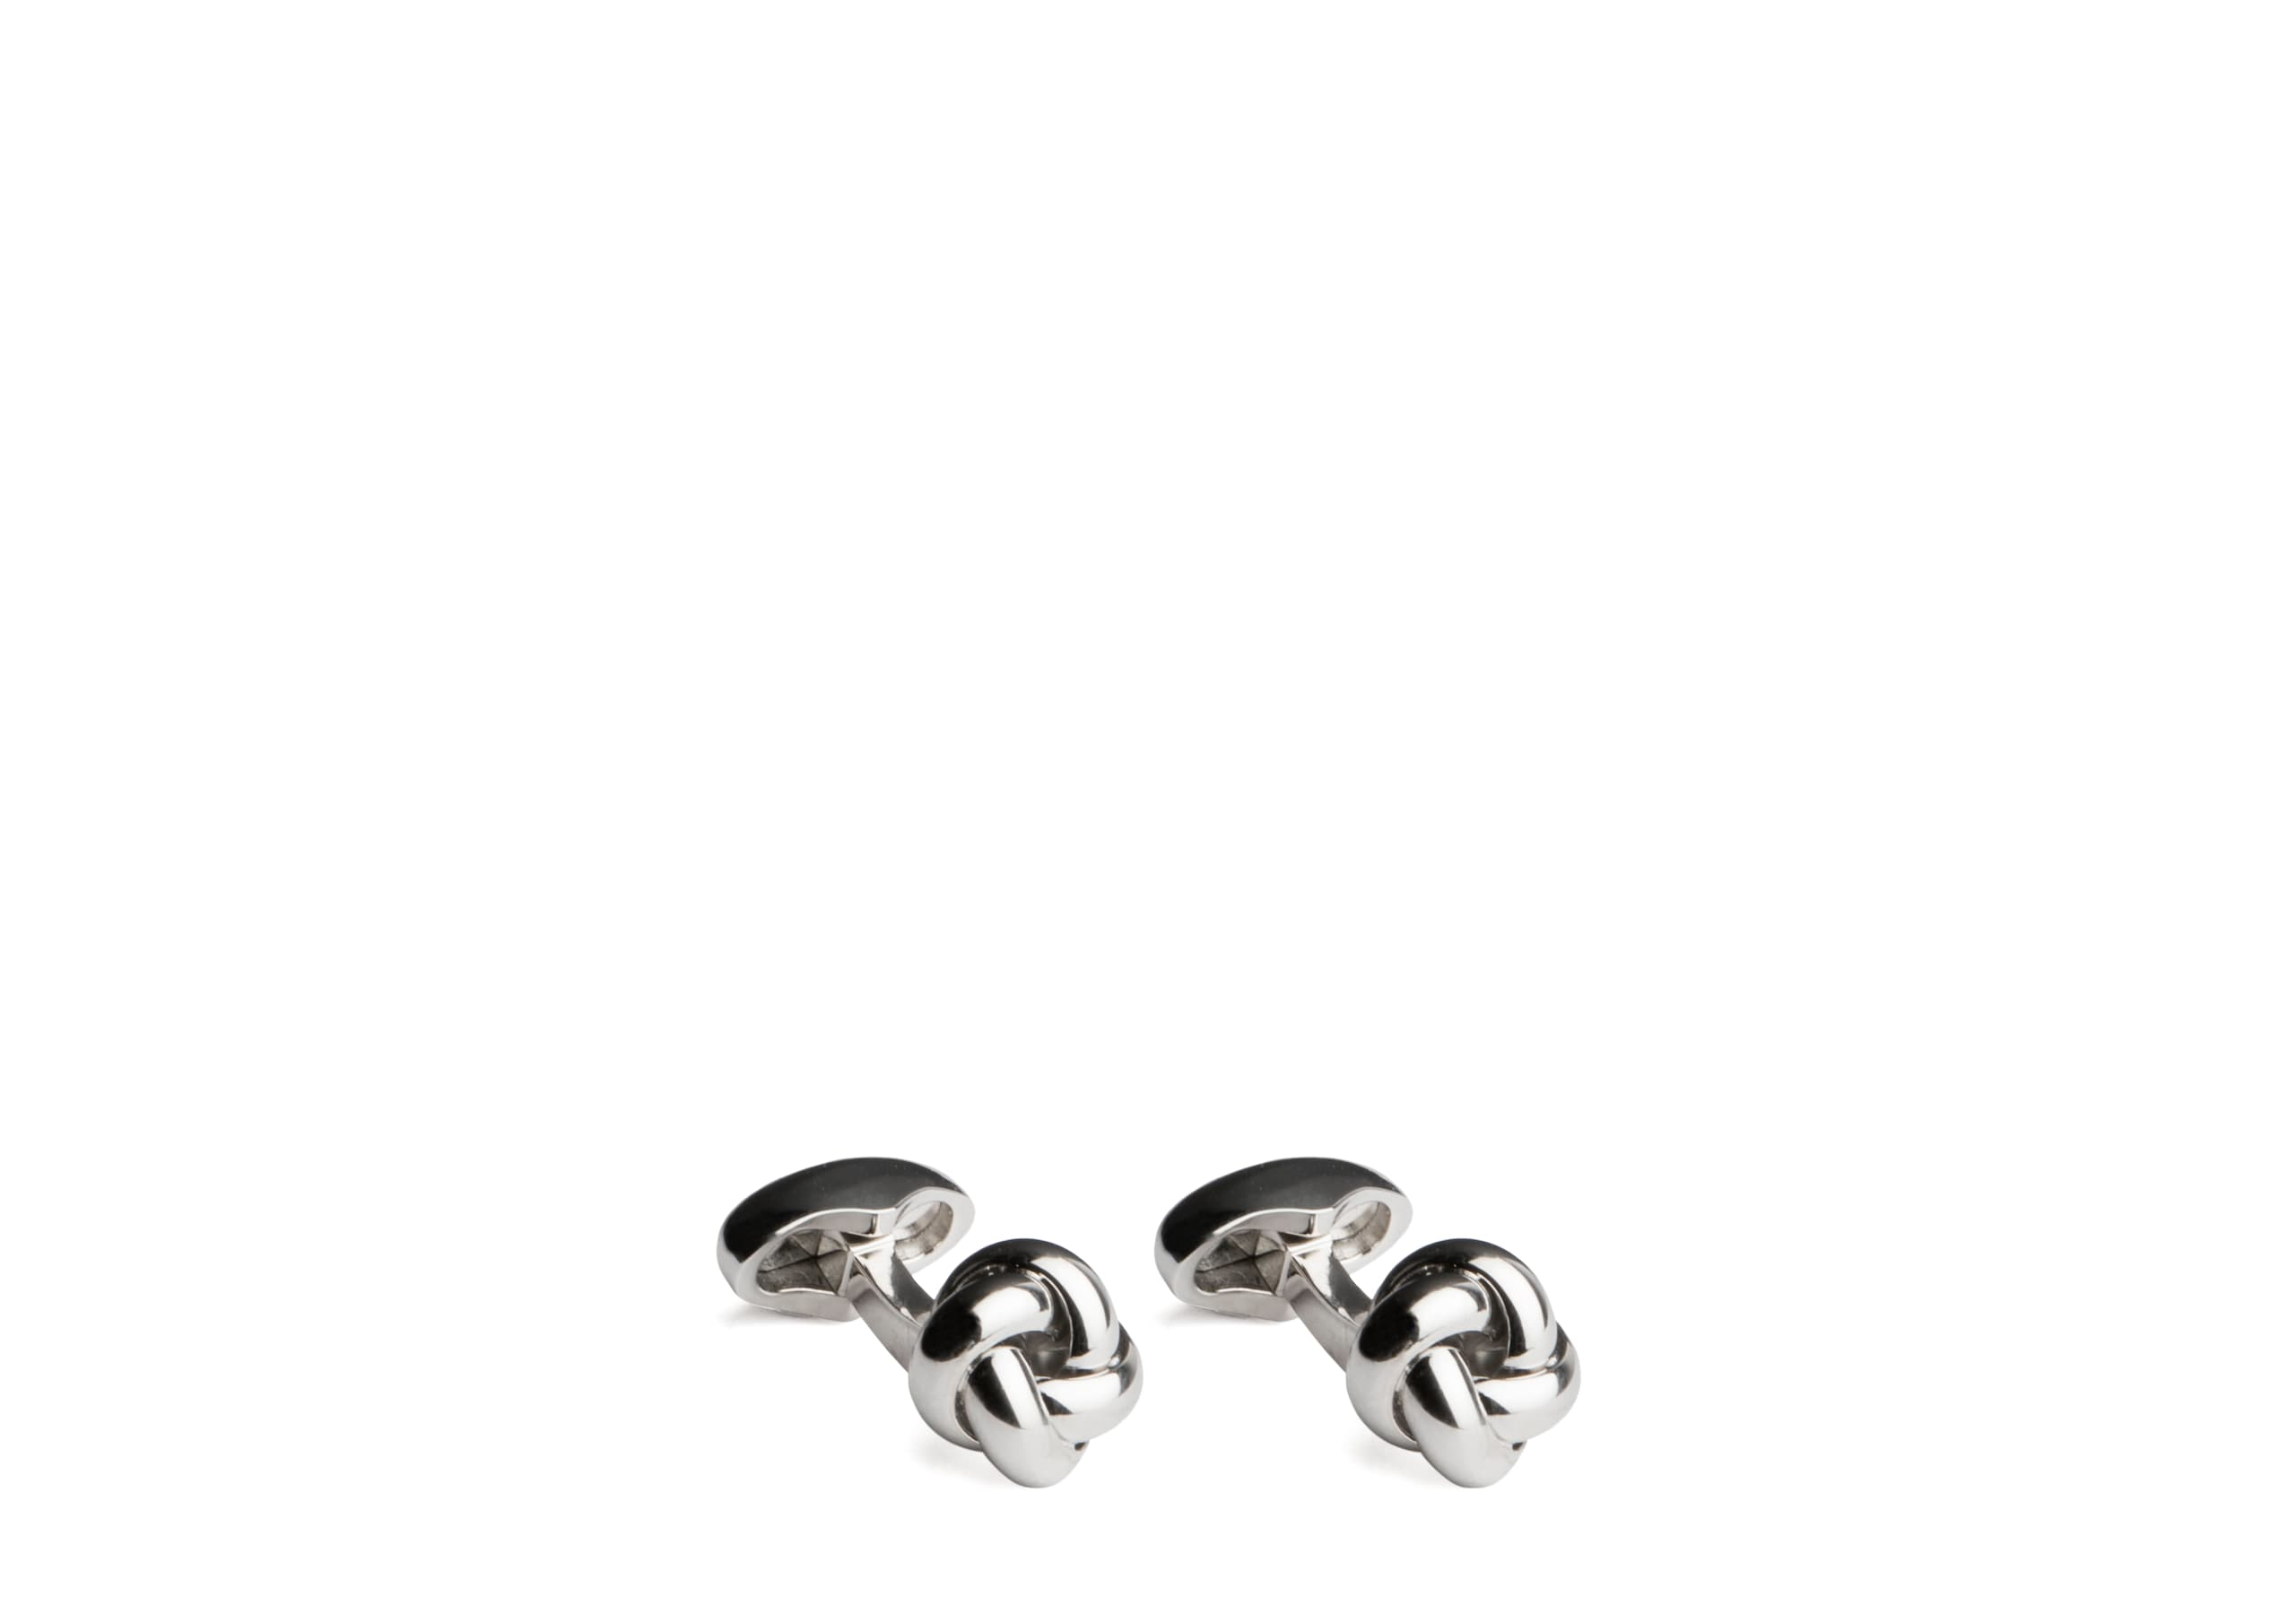 Knotted cufflink Church's Rhodium Plated Knot Gold/silver